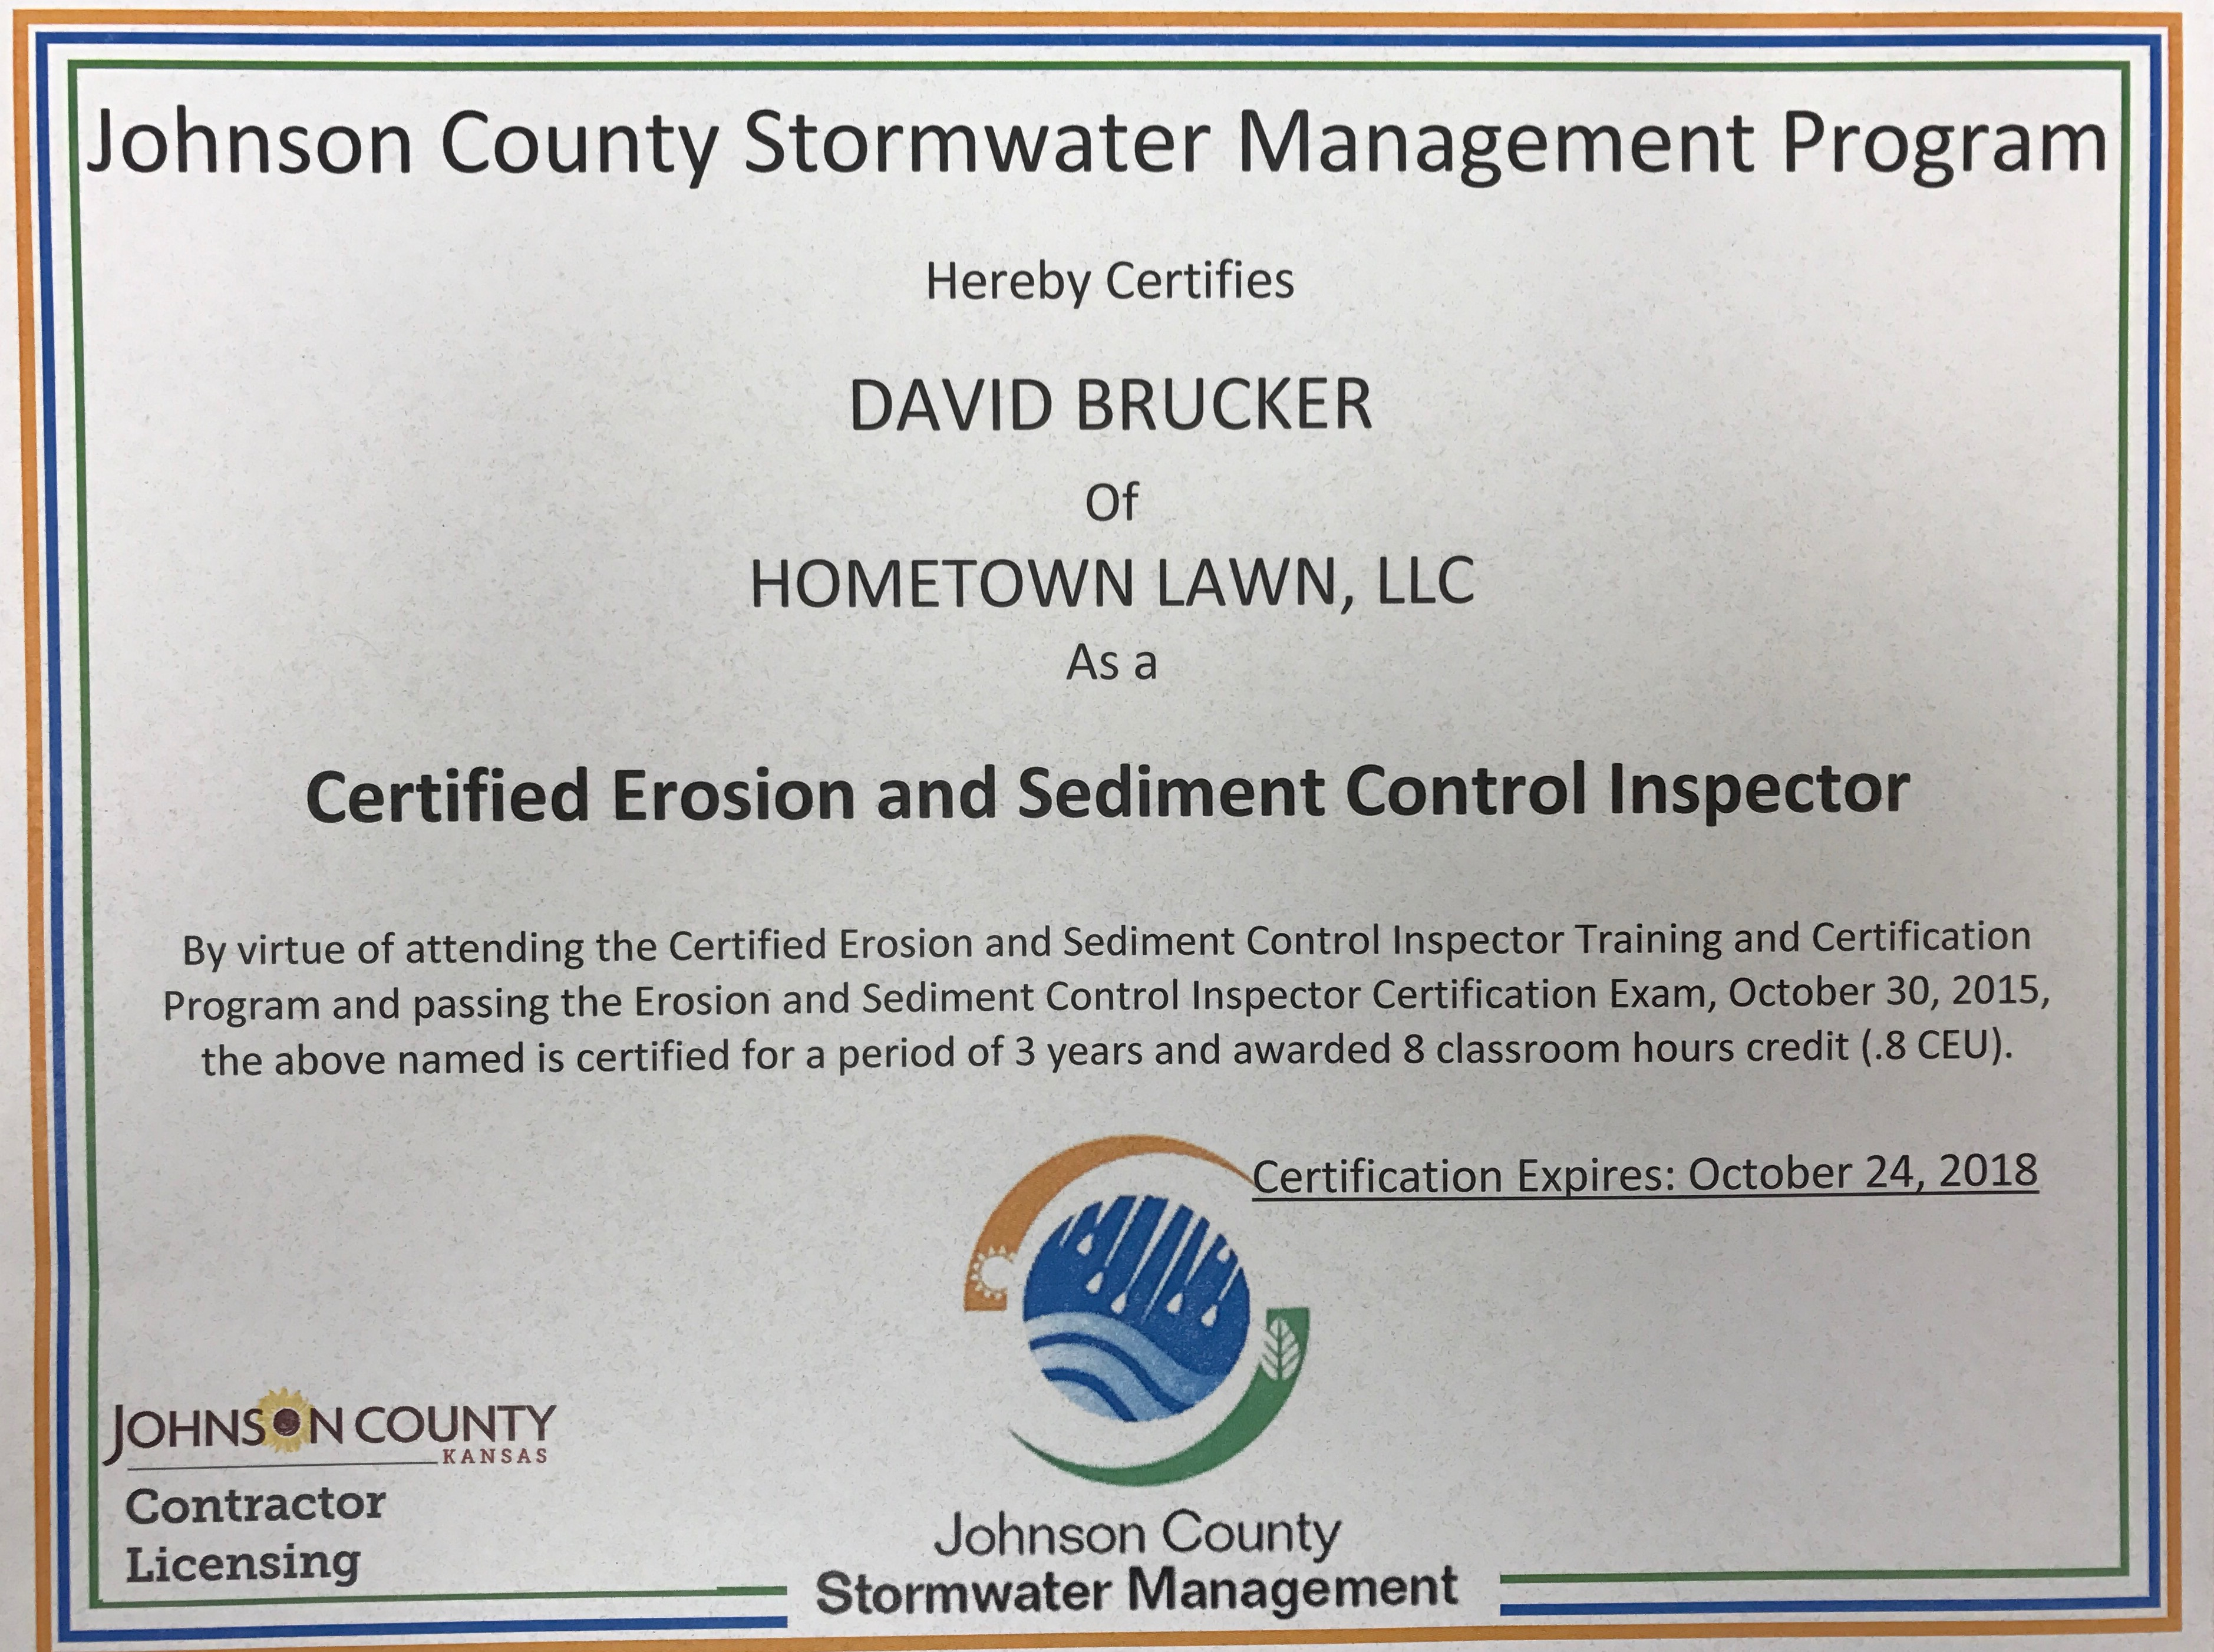 Swppp Bmp Design Insp Install Removal Hometown Lawn Llc